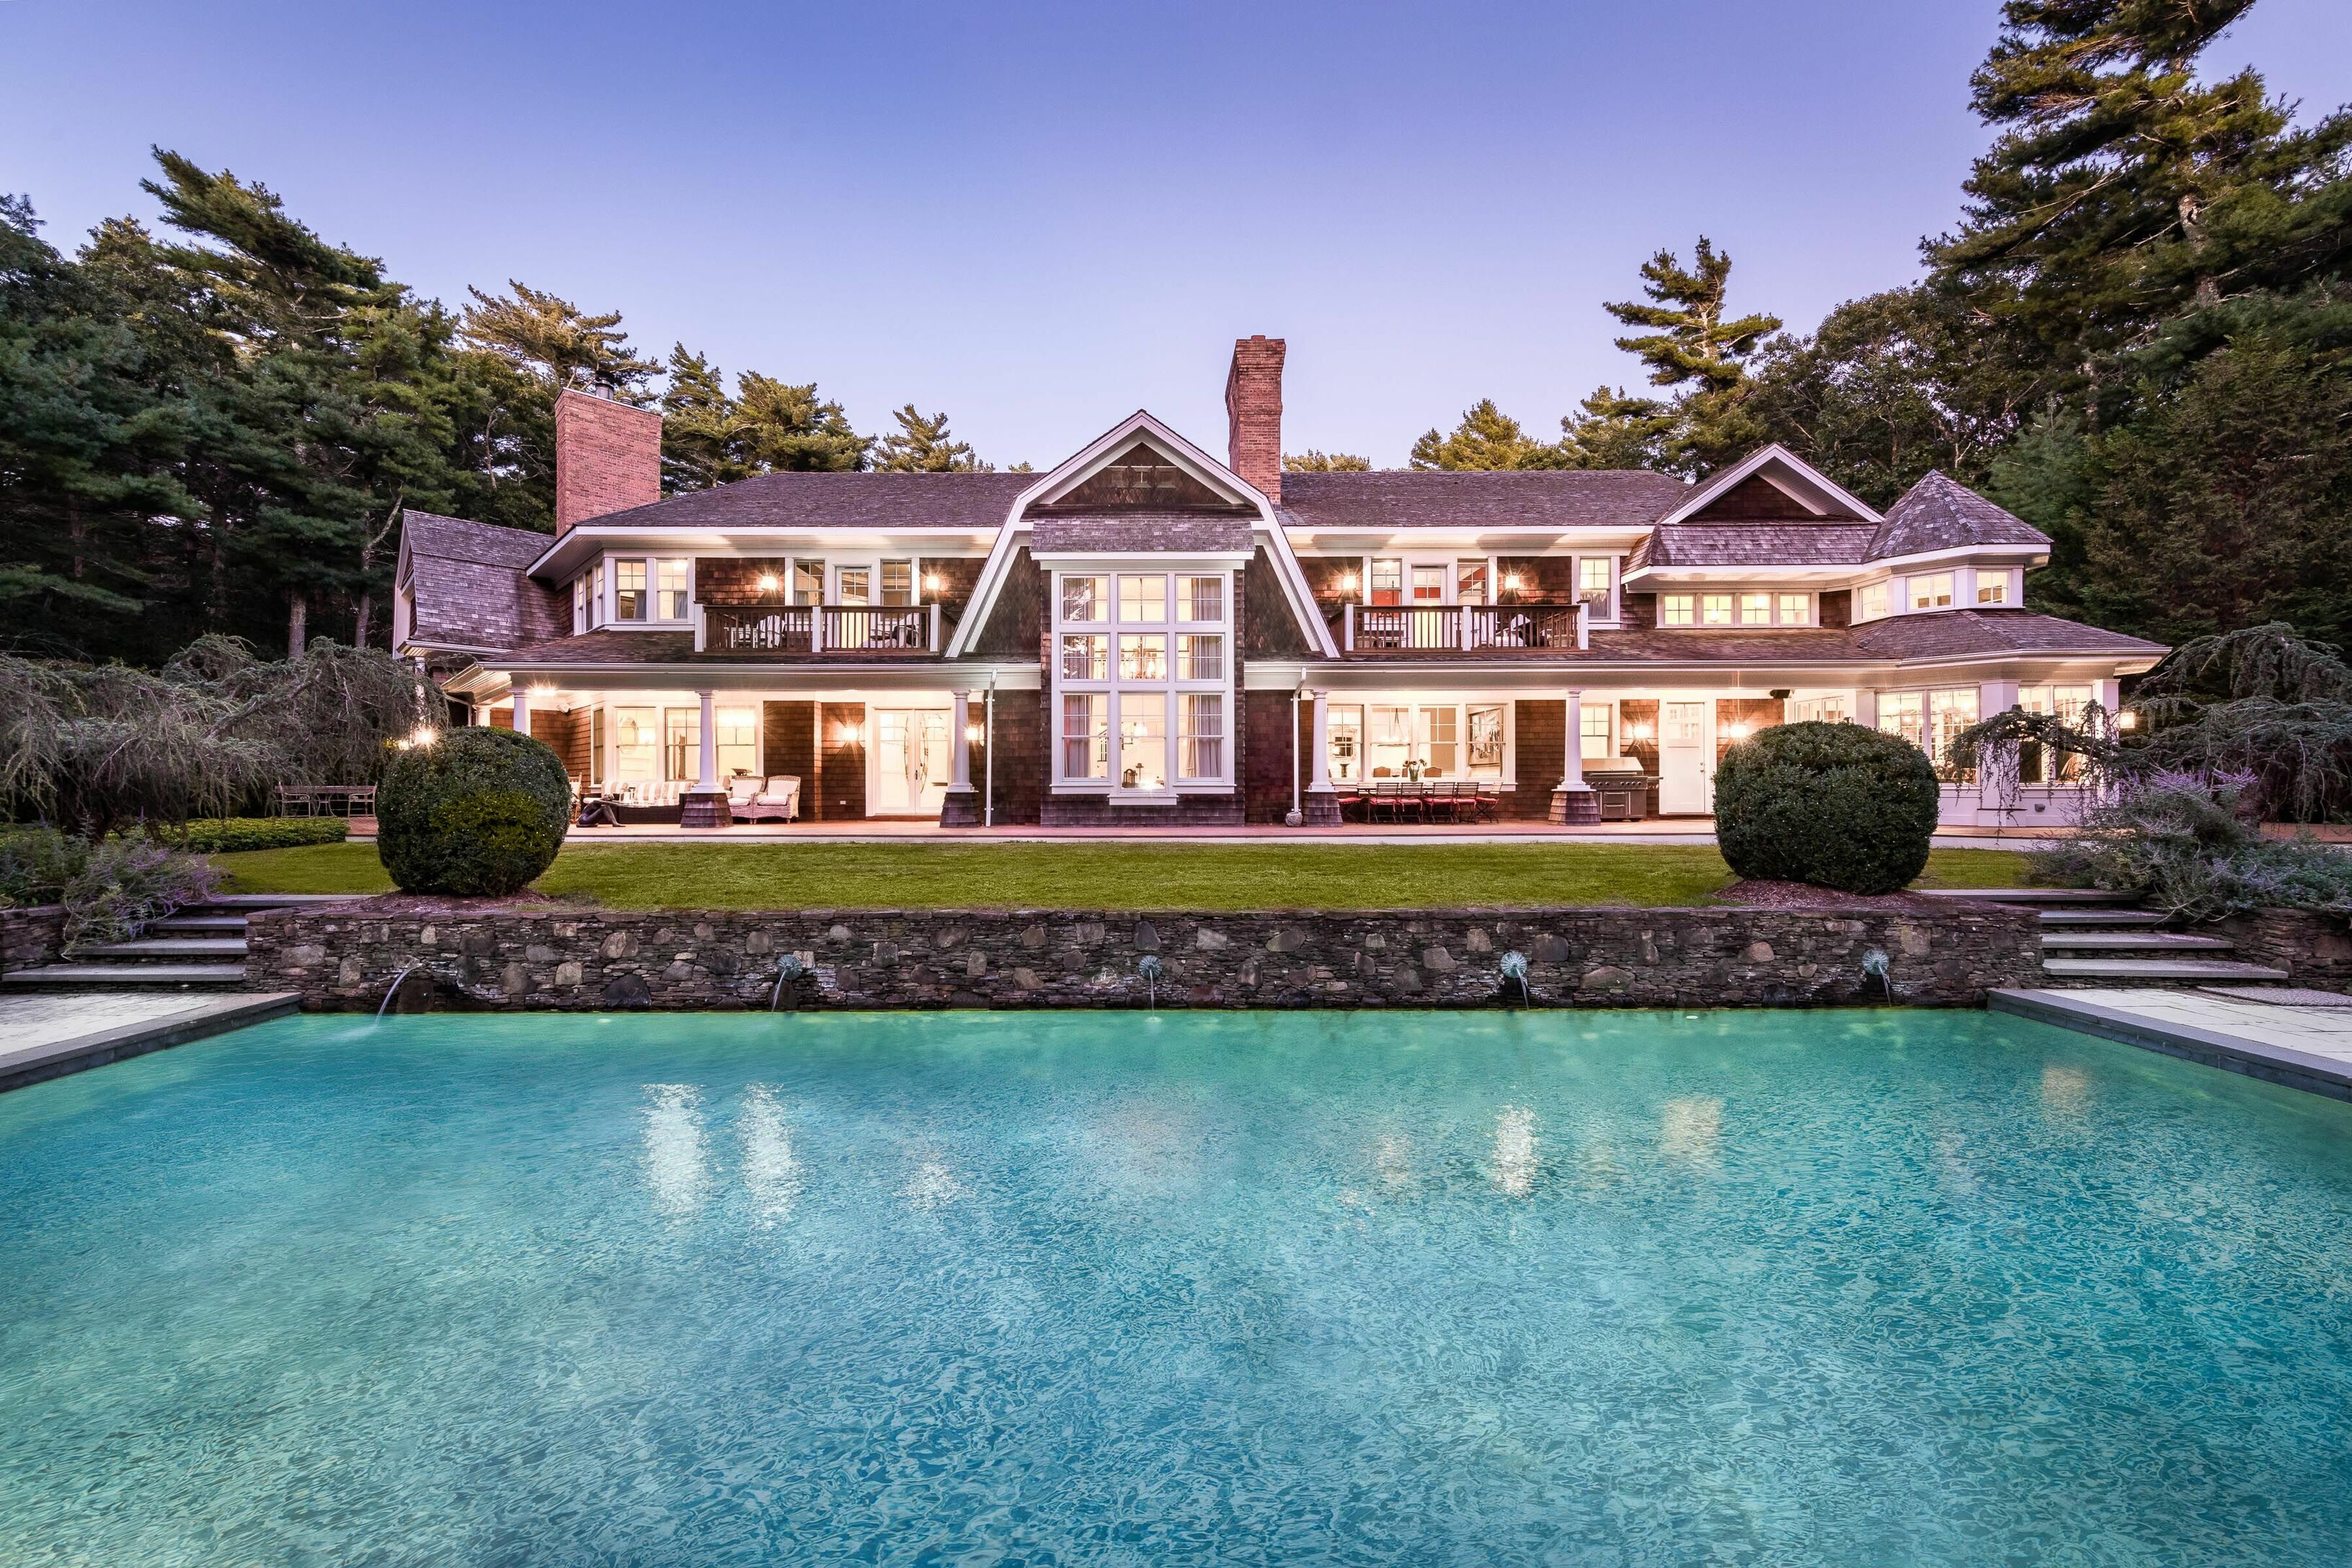 94 Bull Path - East Hampton Village Fringe, New York